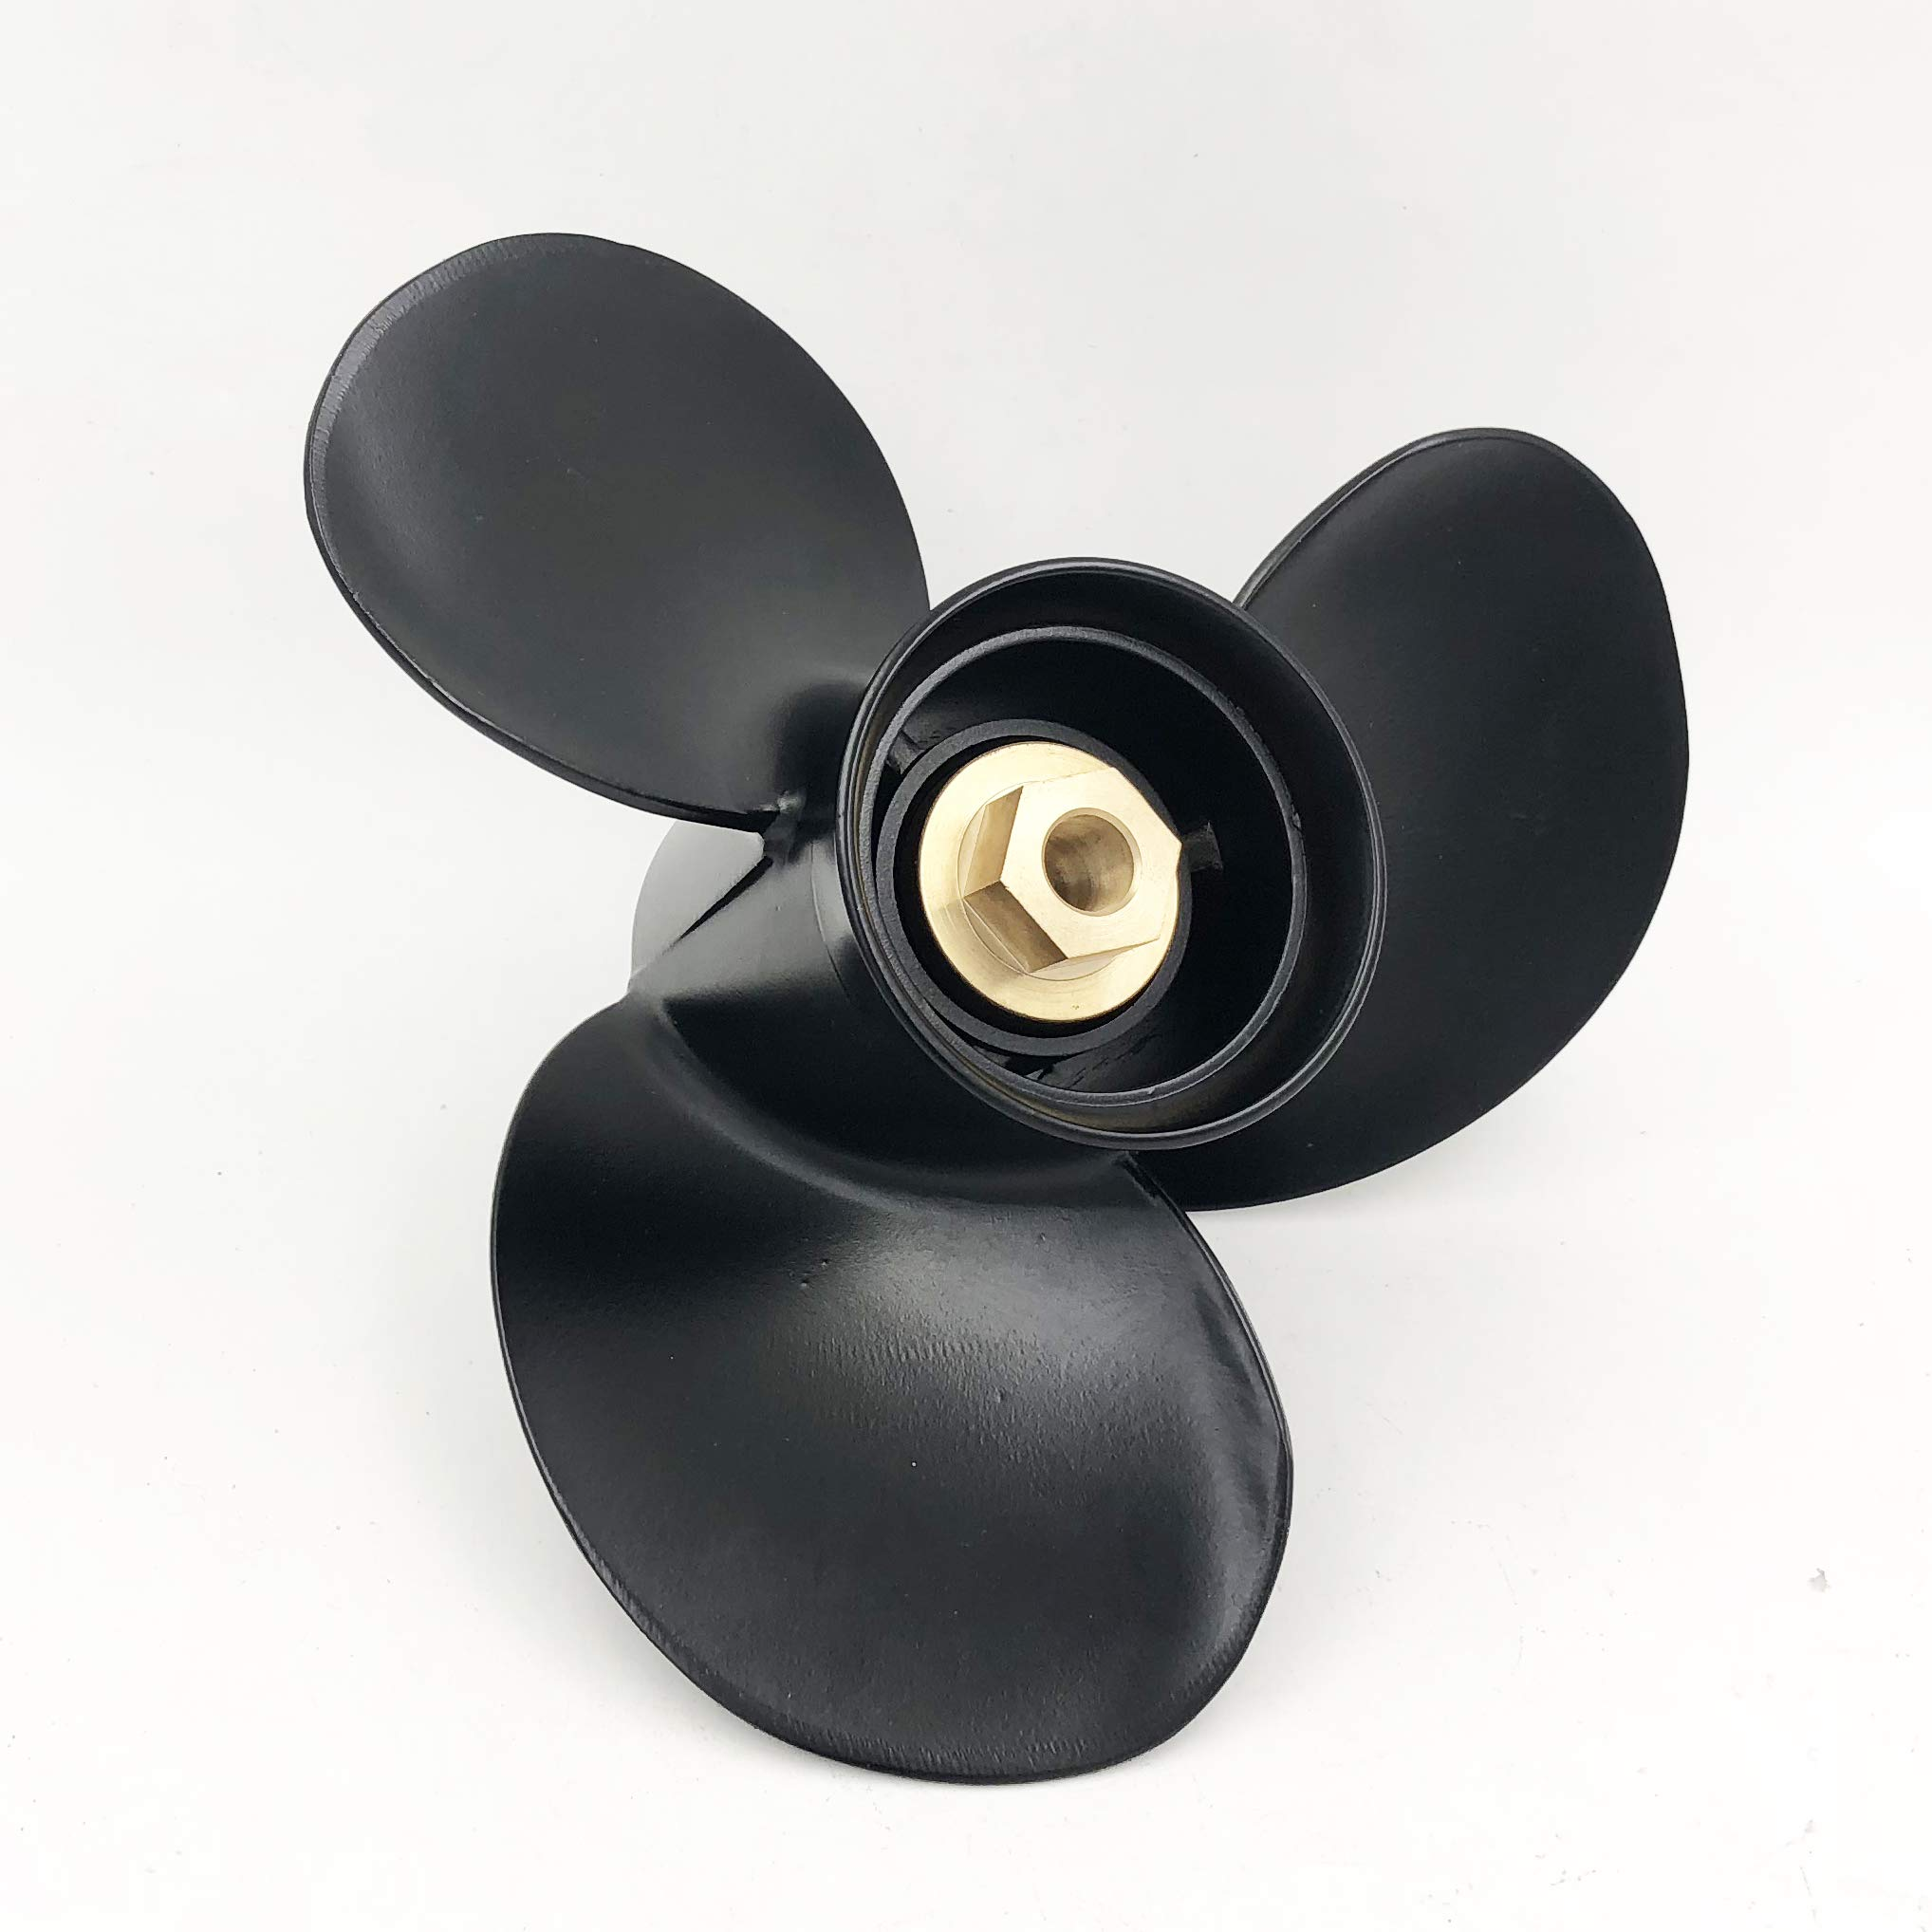 POLASTORM for Mercury 9.9-25HP Aluminum Outboard Propeller 10 3/8 Diax 11 Pitch Engine 48-19638A40 by POLASTORM